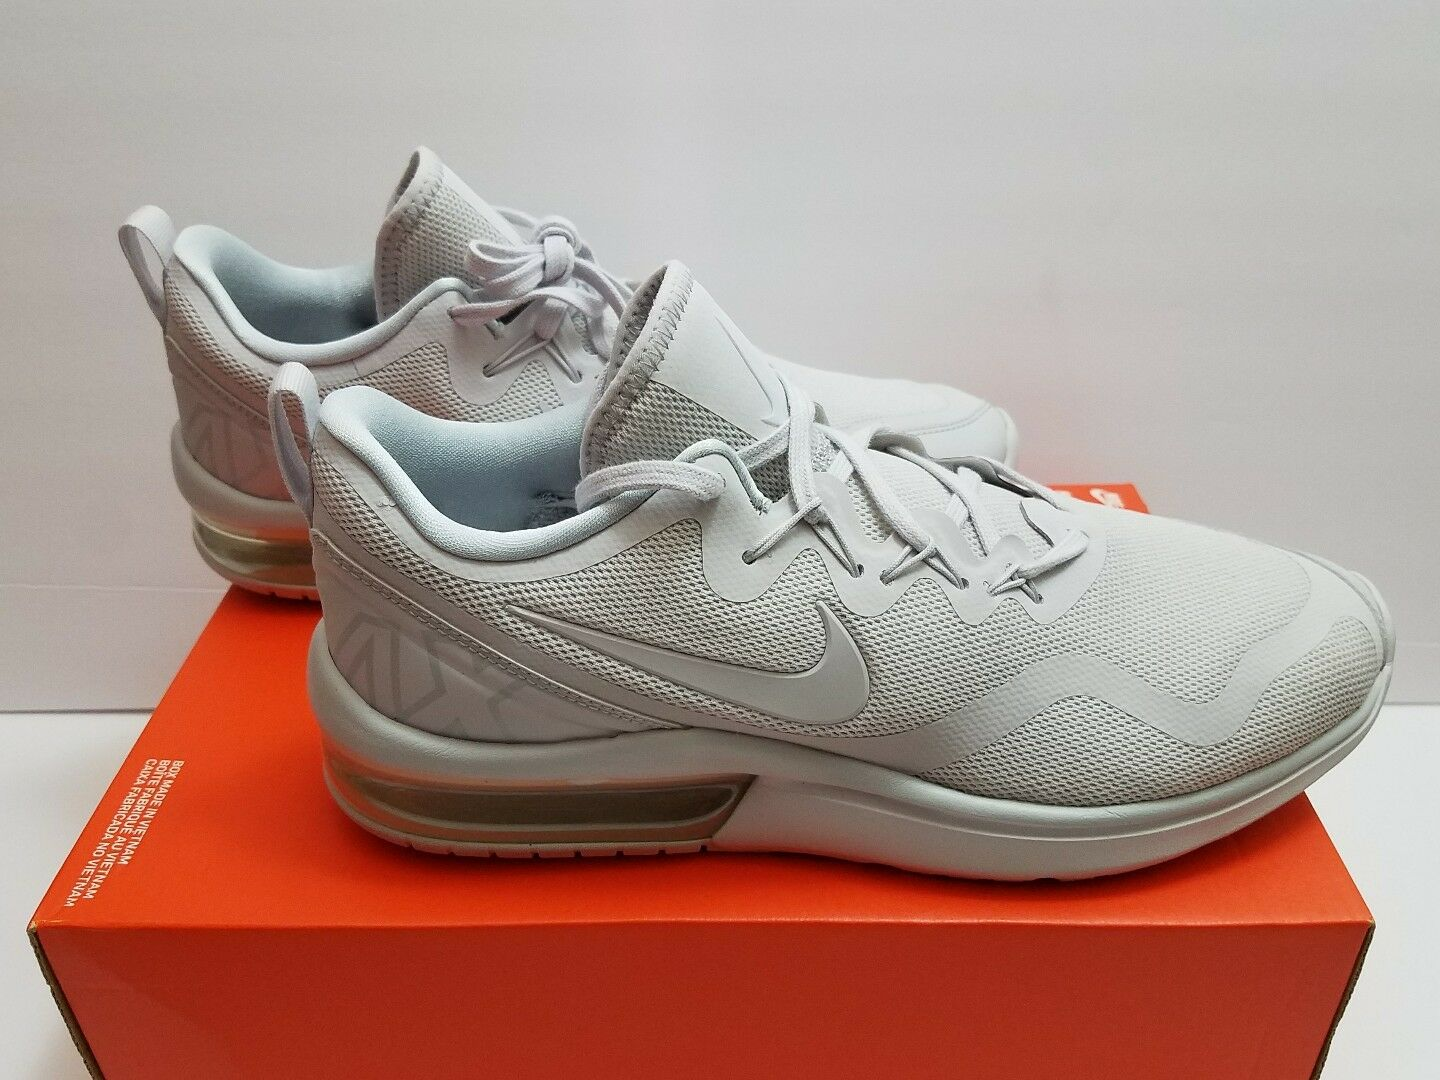 NEW Men's Nike Air Max Fury Size 9.5 Running AA5739-100 White/Pure Platinum